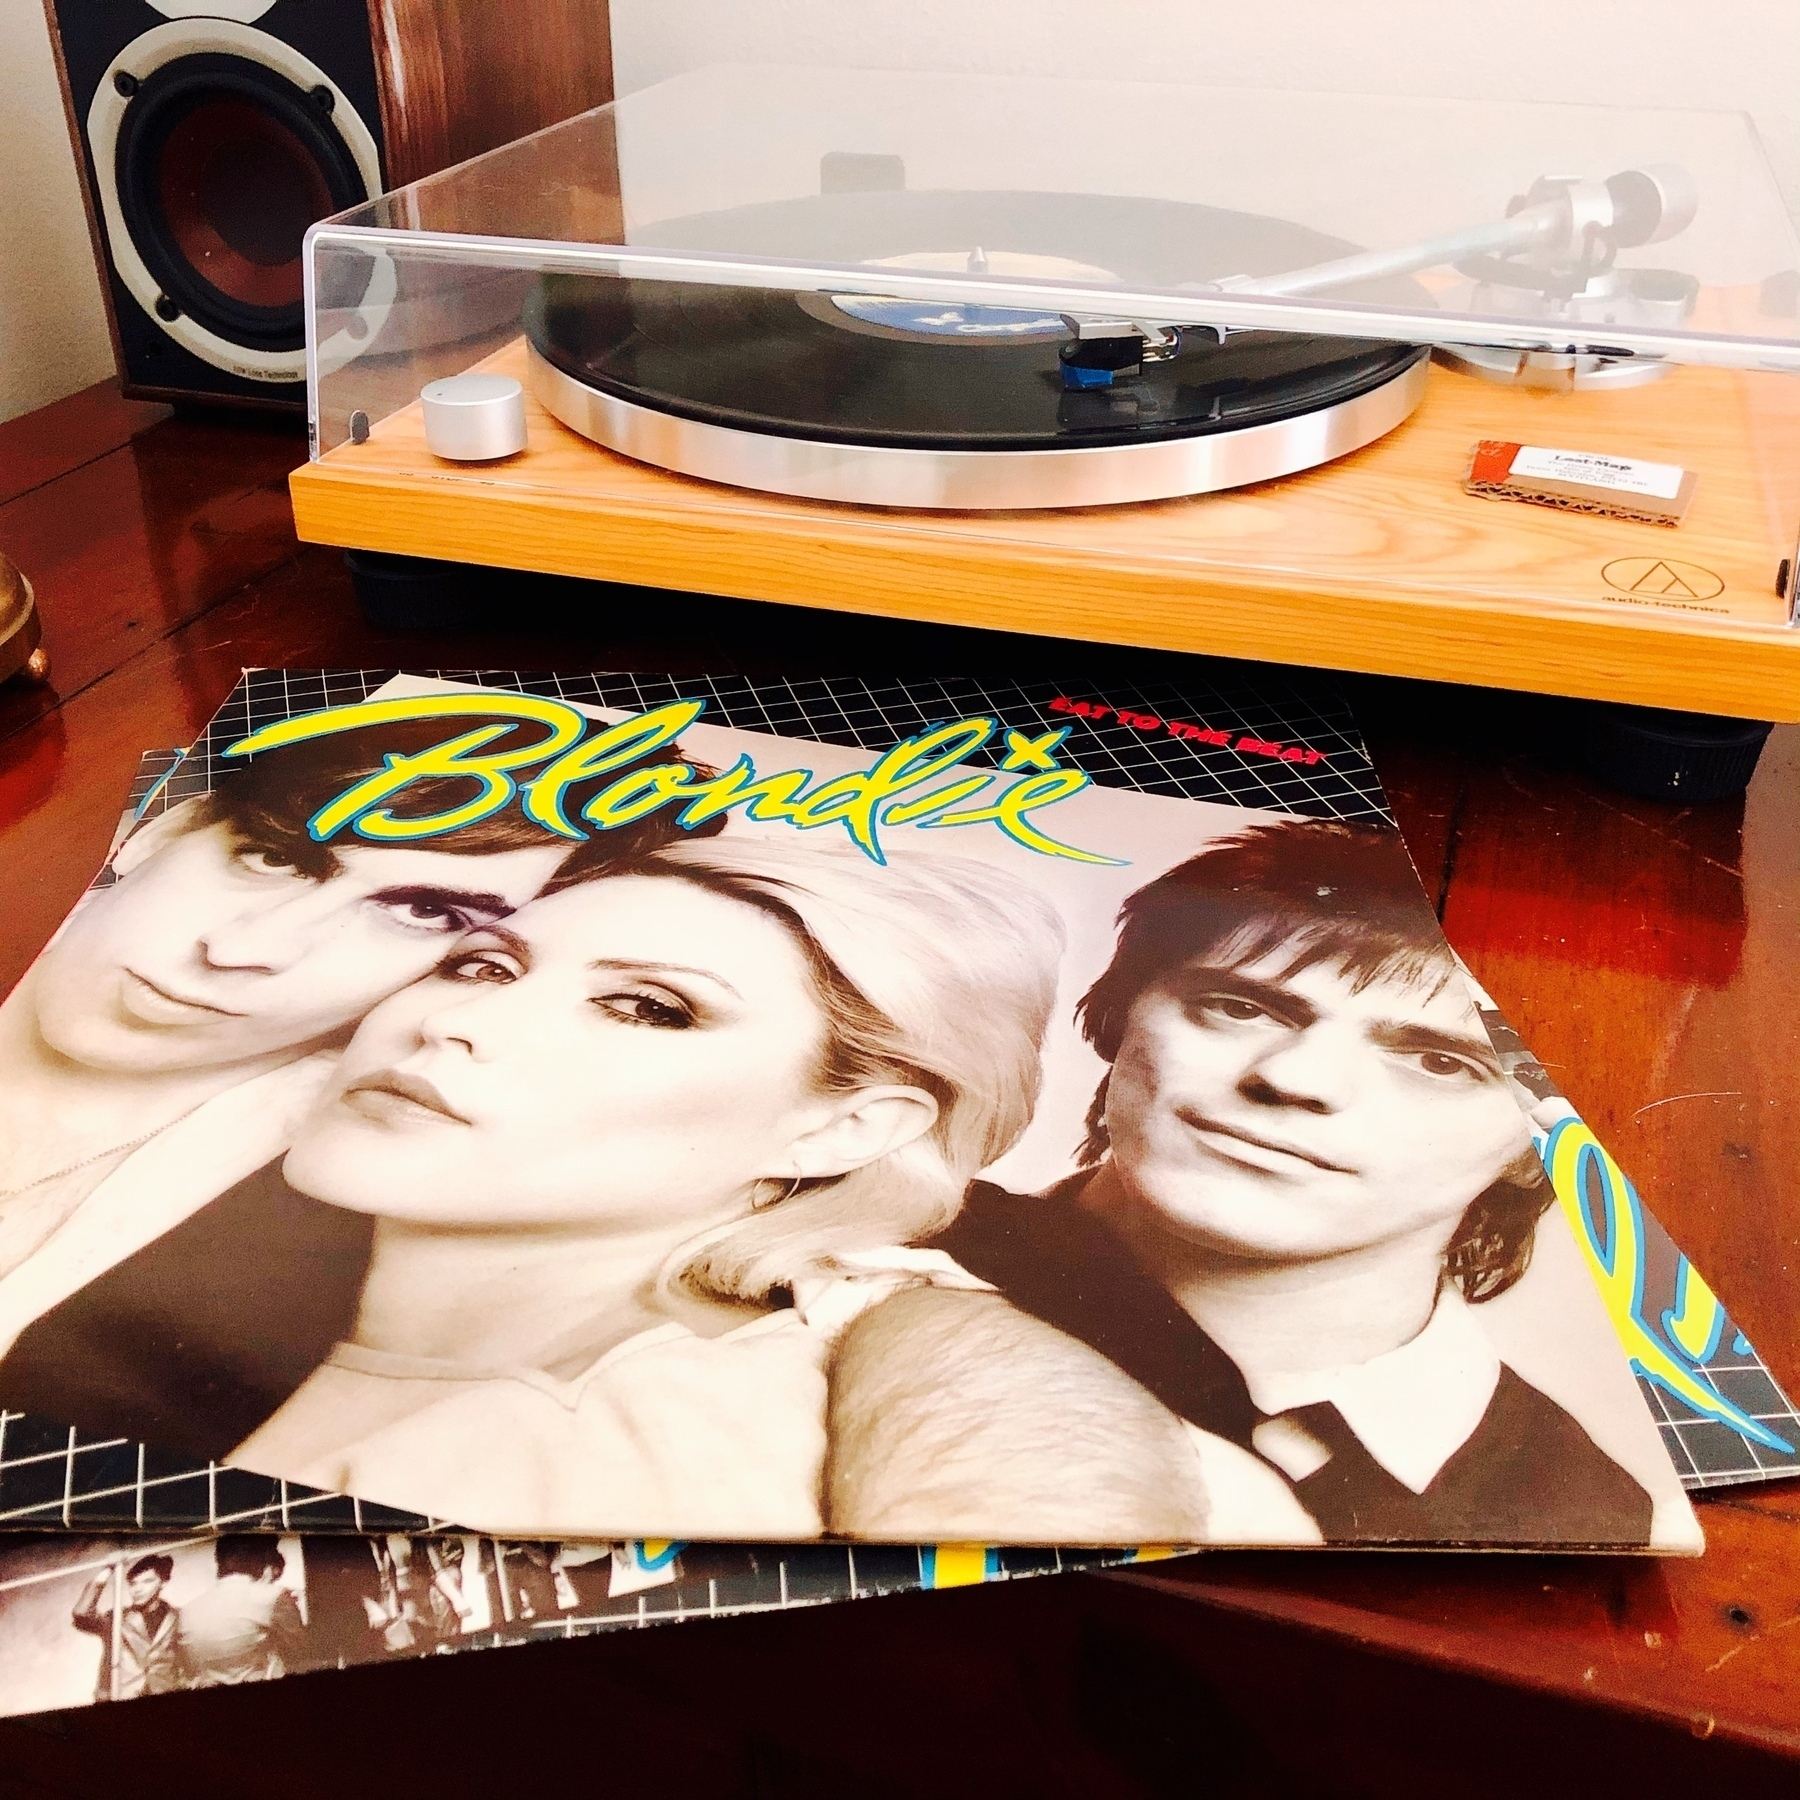 Blondie album Eat to the Beat on a record player